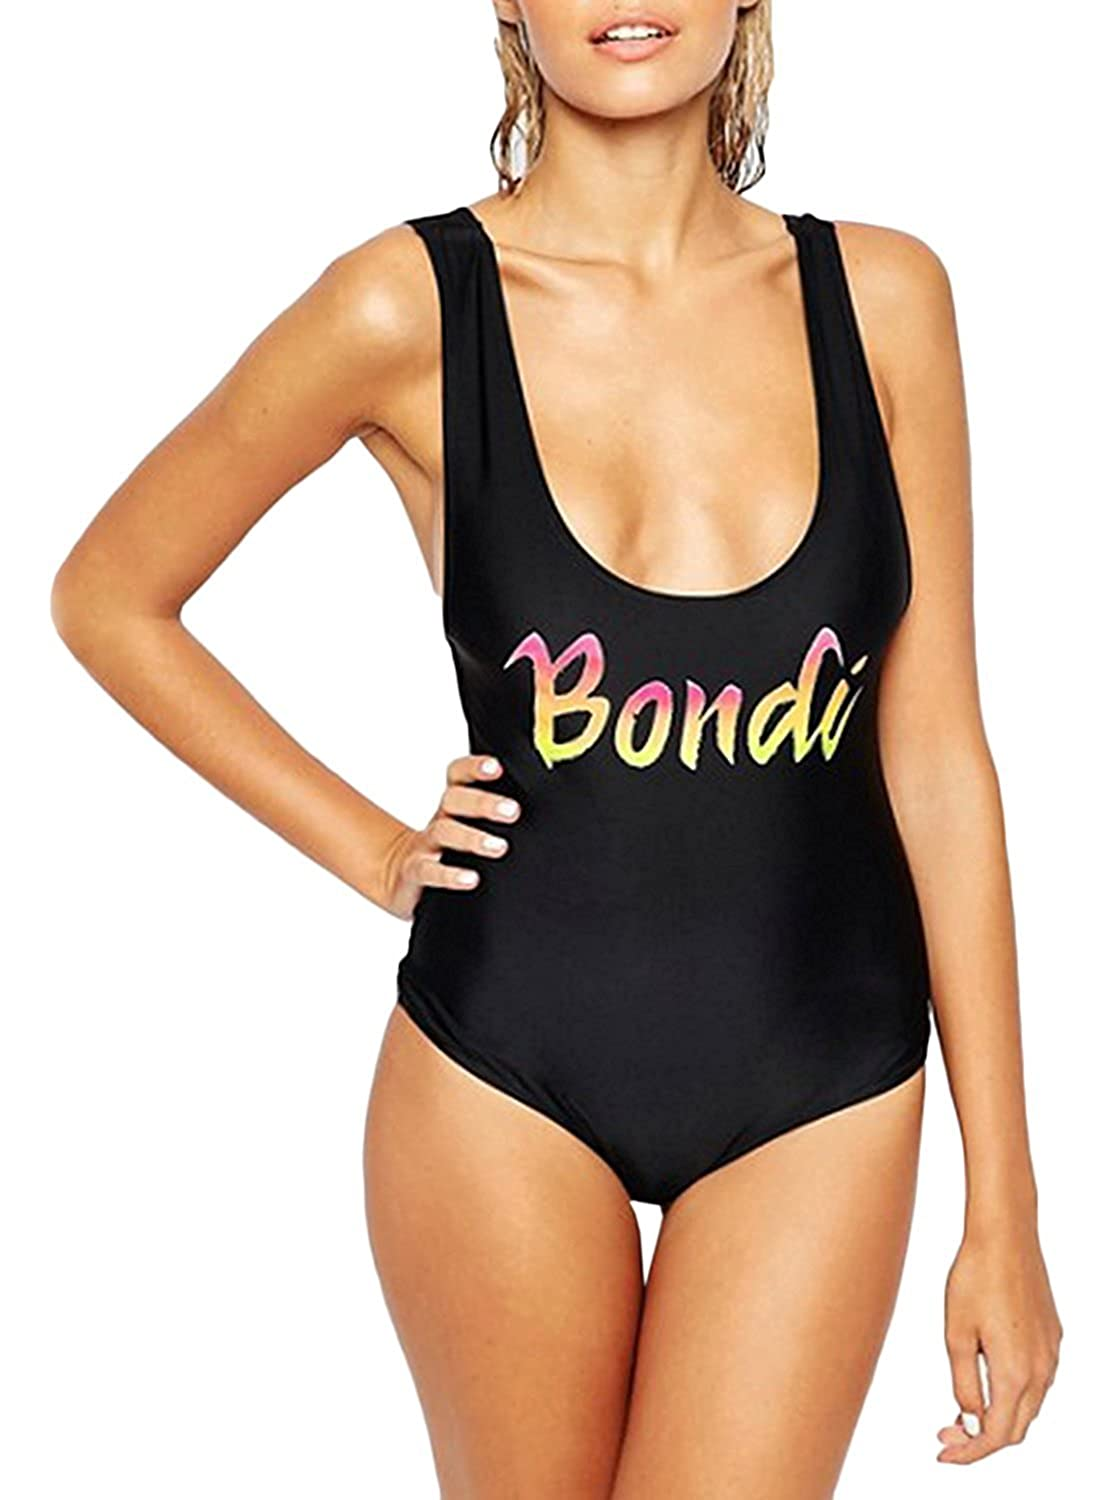 Women's Letters Print Athletic Sport Backless One-Piece Swimsuit Bathing Suit